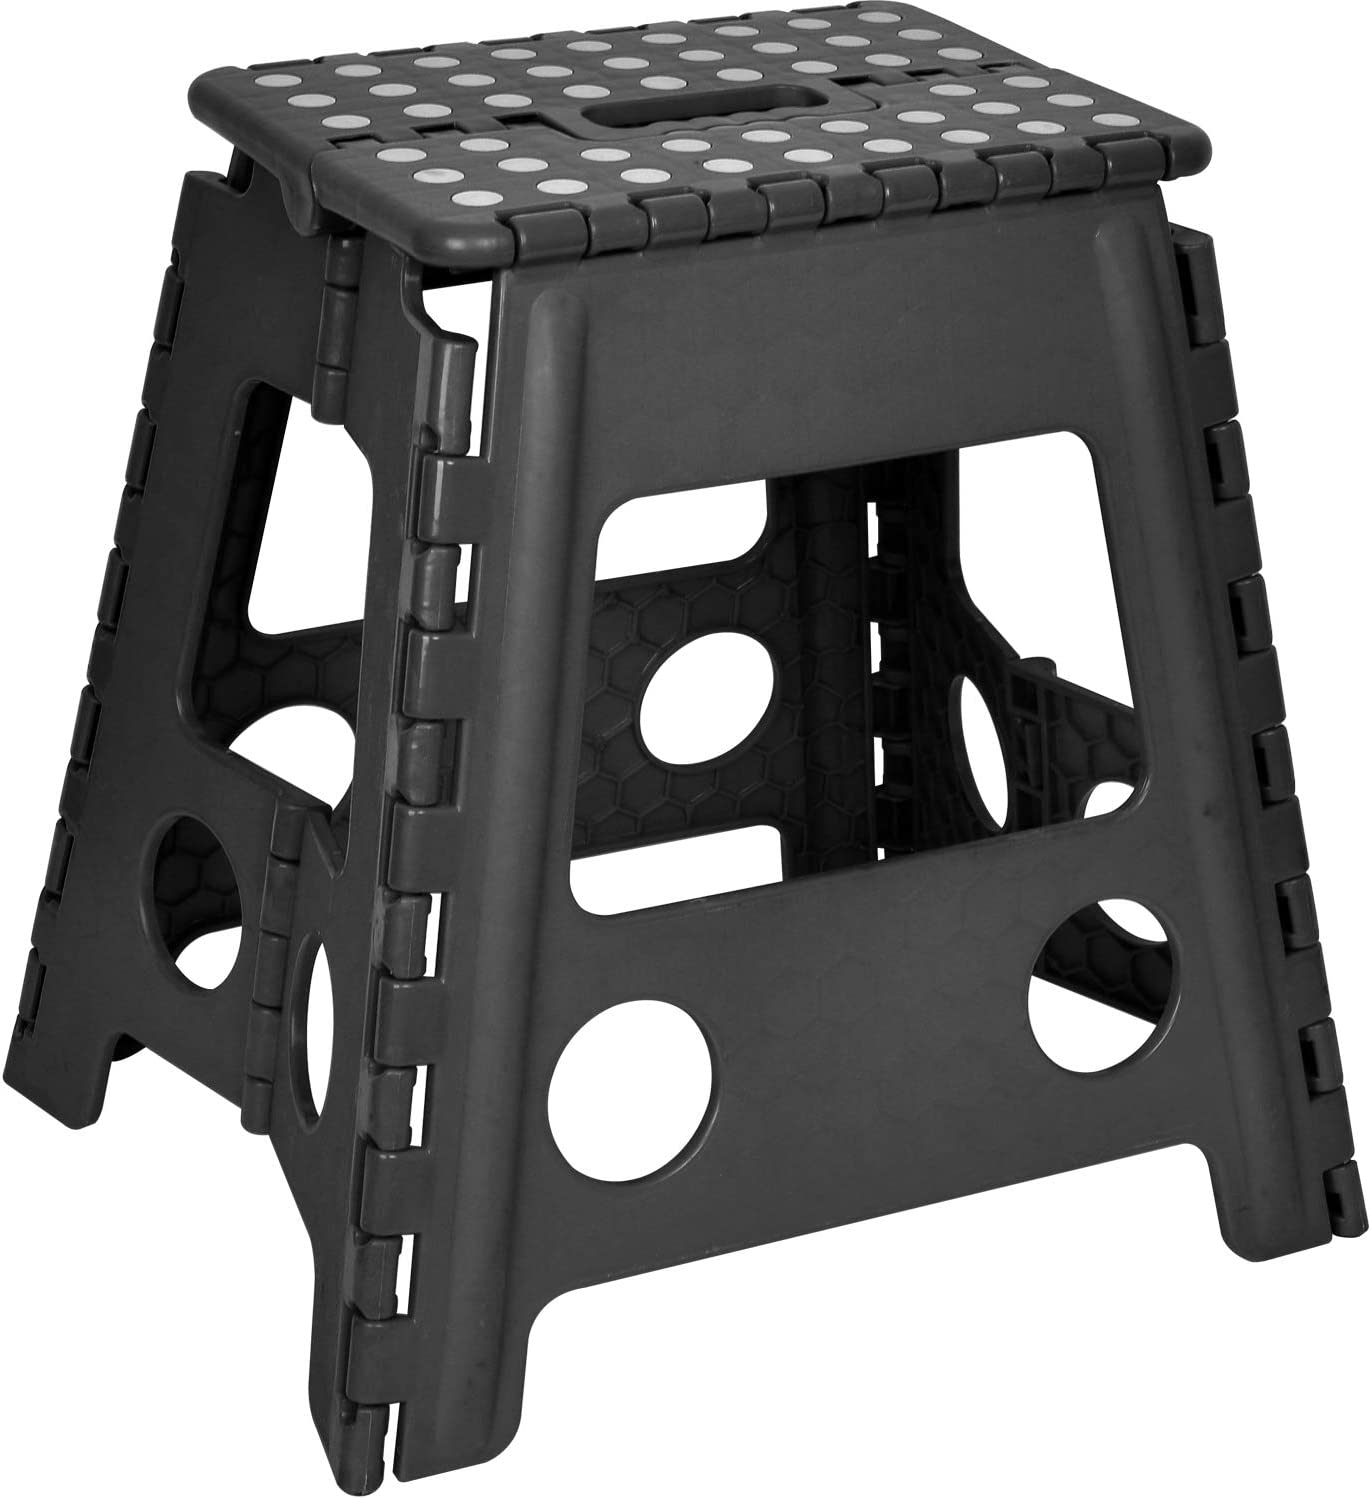 Folding Step Stool - 15 Inch Height Heavy Duty Foldable Stool for Adults and Kids, Kitchen Stepping Stools, Garden Bathroom Step Stool Black